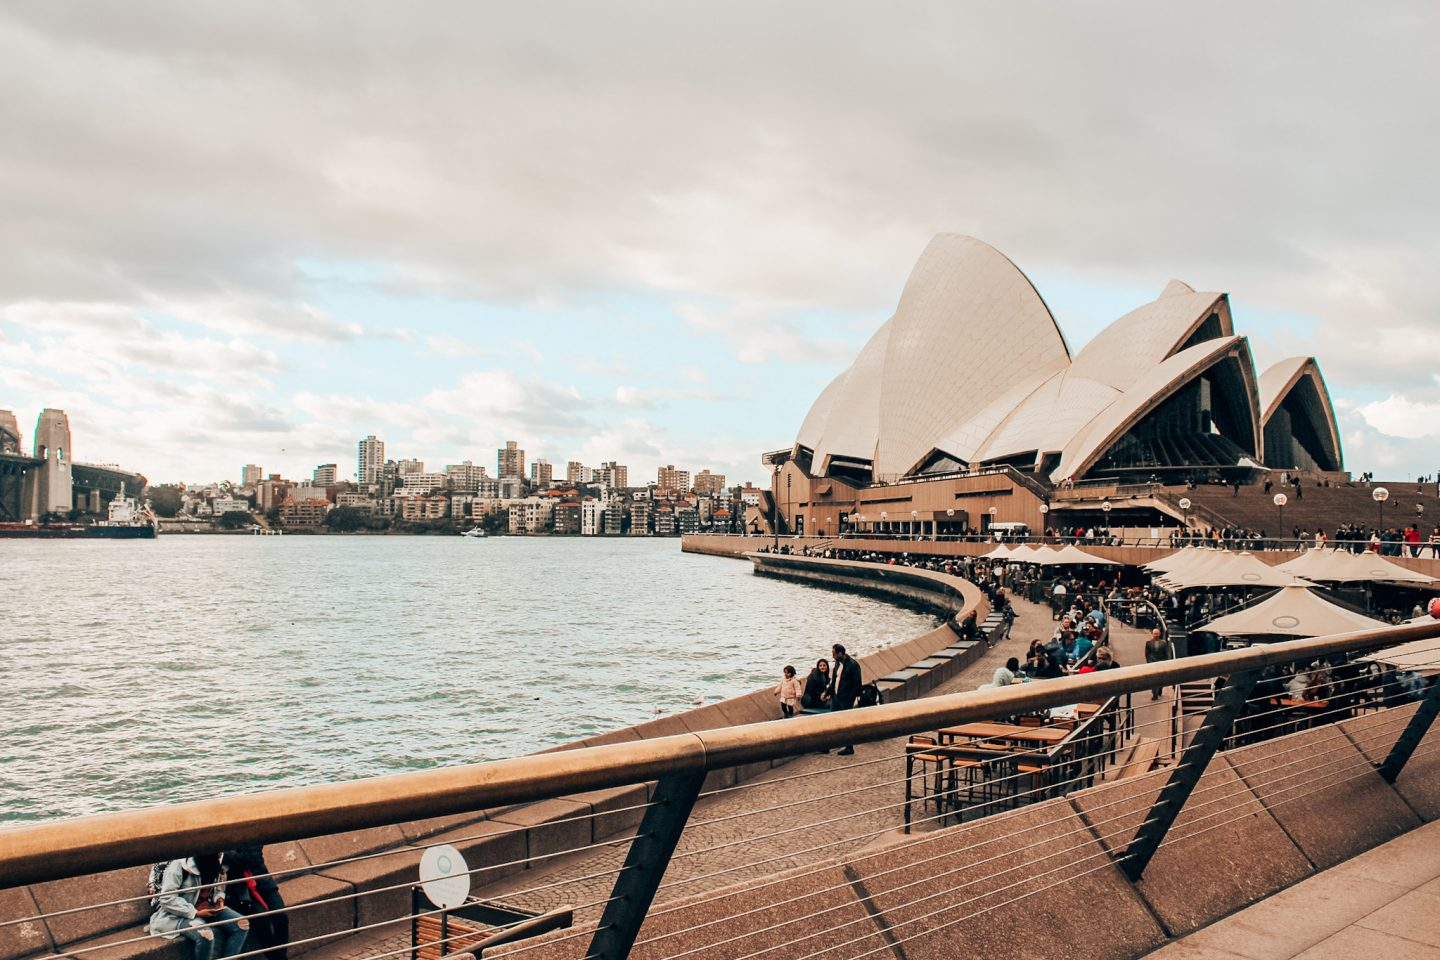 The Sydney Opera House and harbor on a quiet afternoon